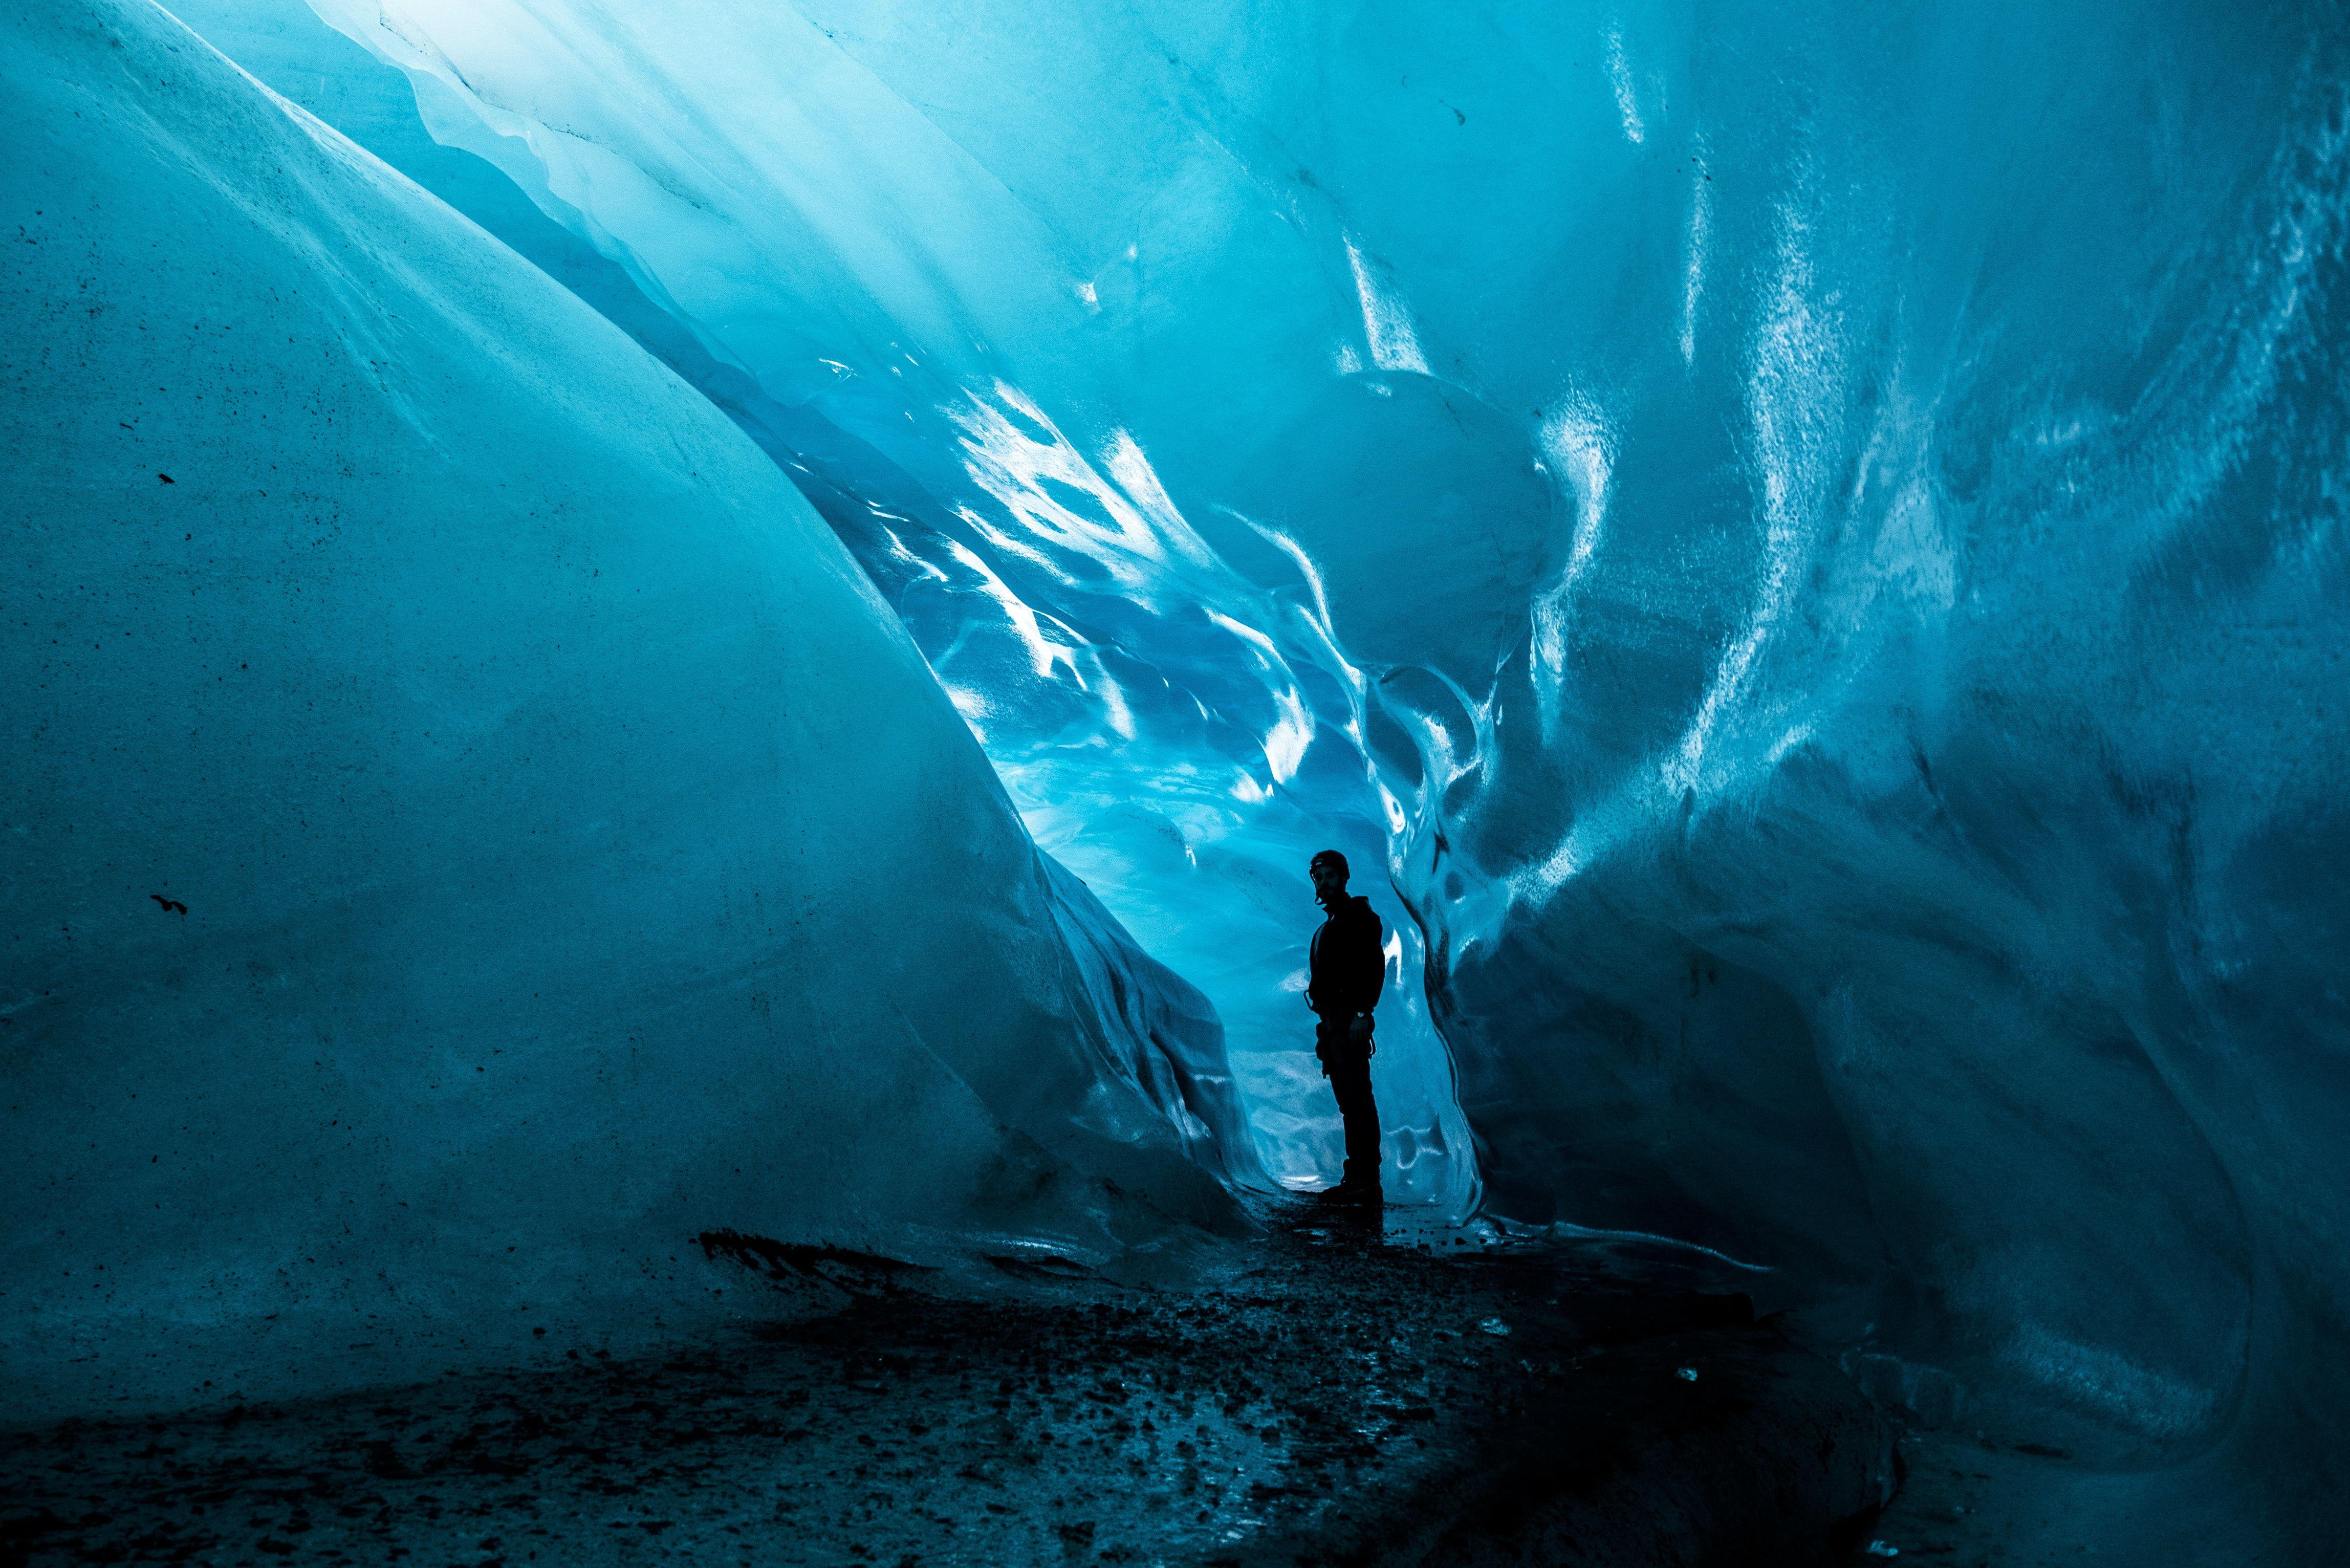 person standing in ice cave at daytime